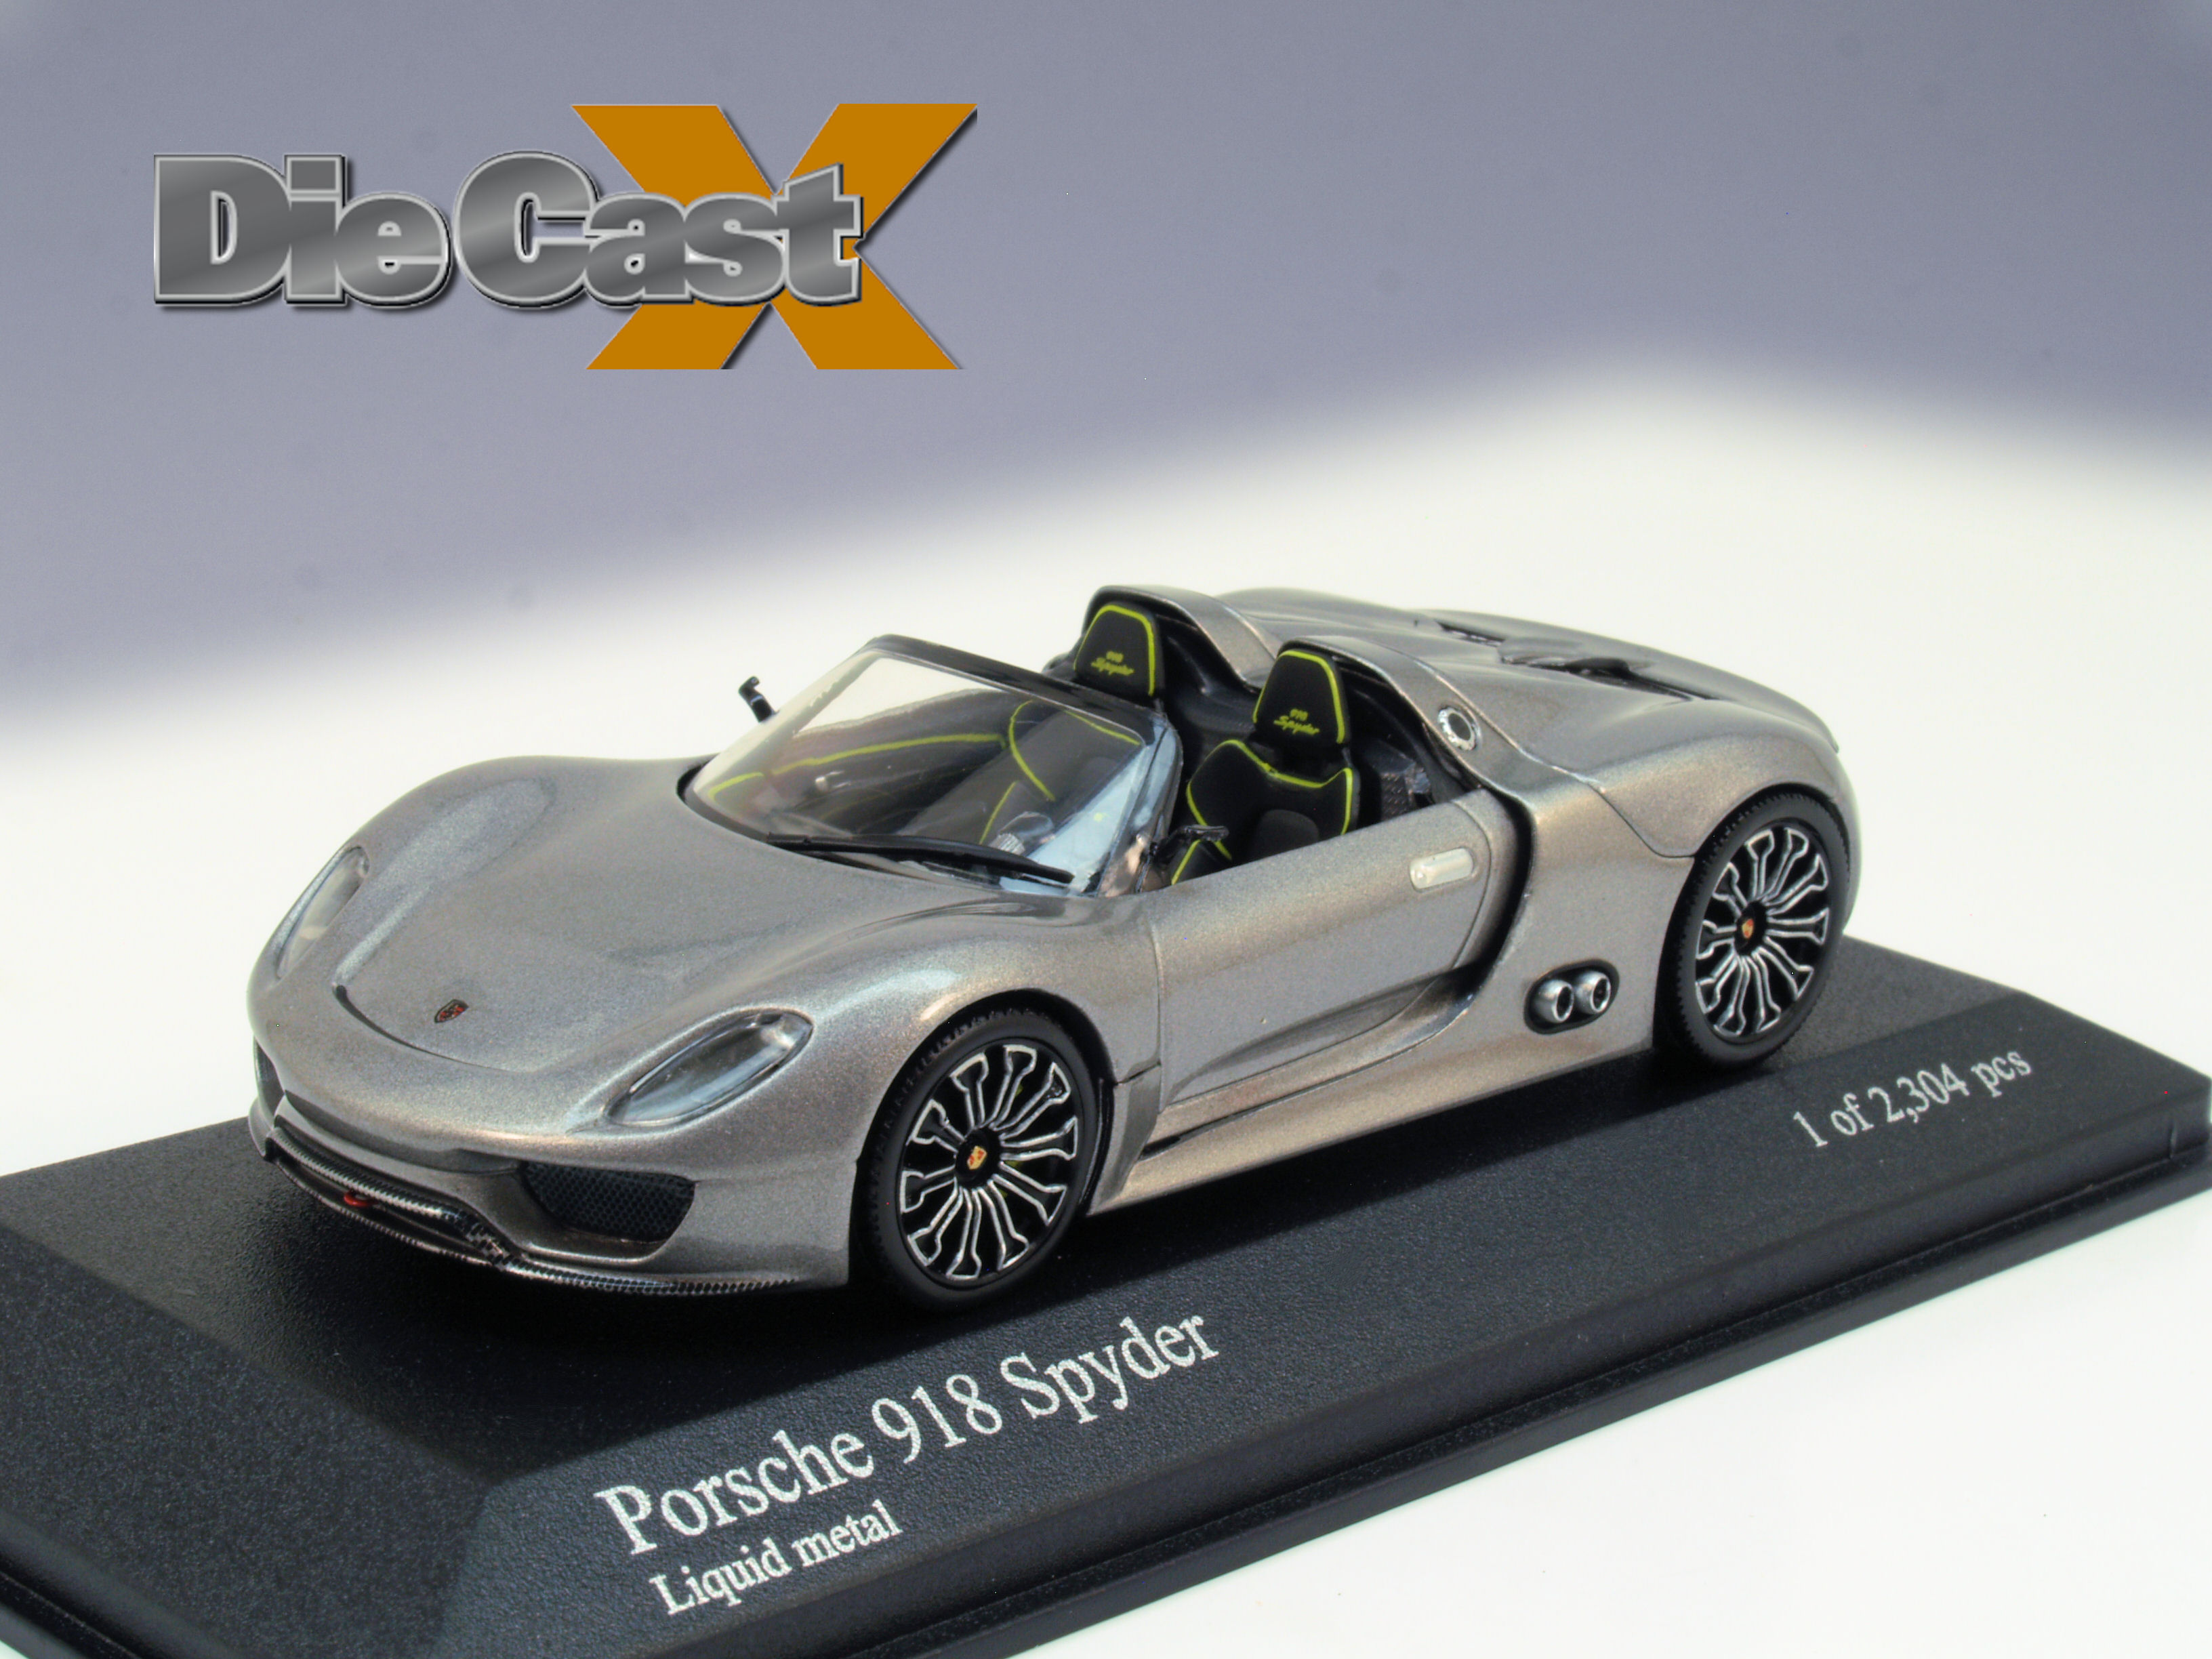 Minichamps 1:43 Porsche 918 Spyder: Electric Slide